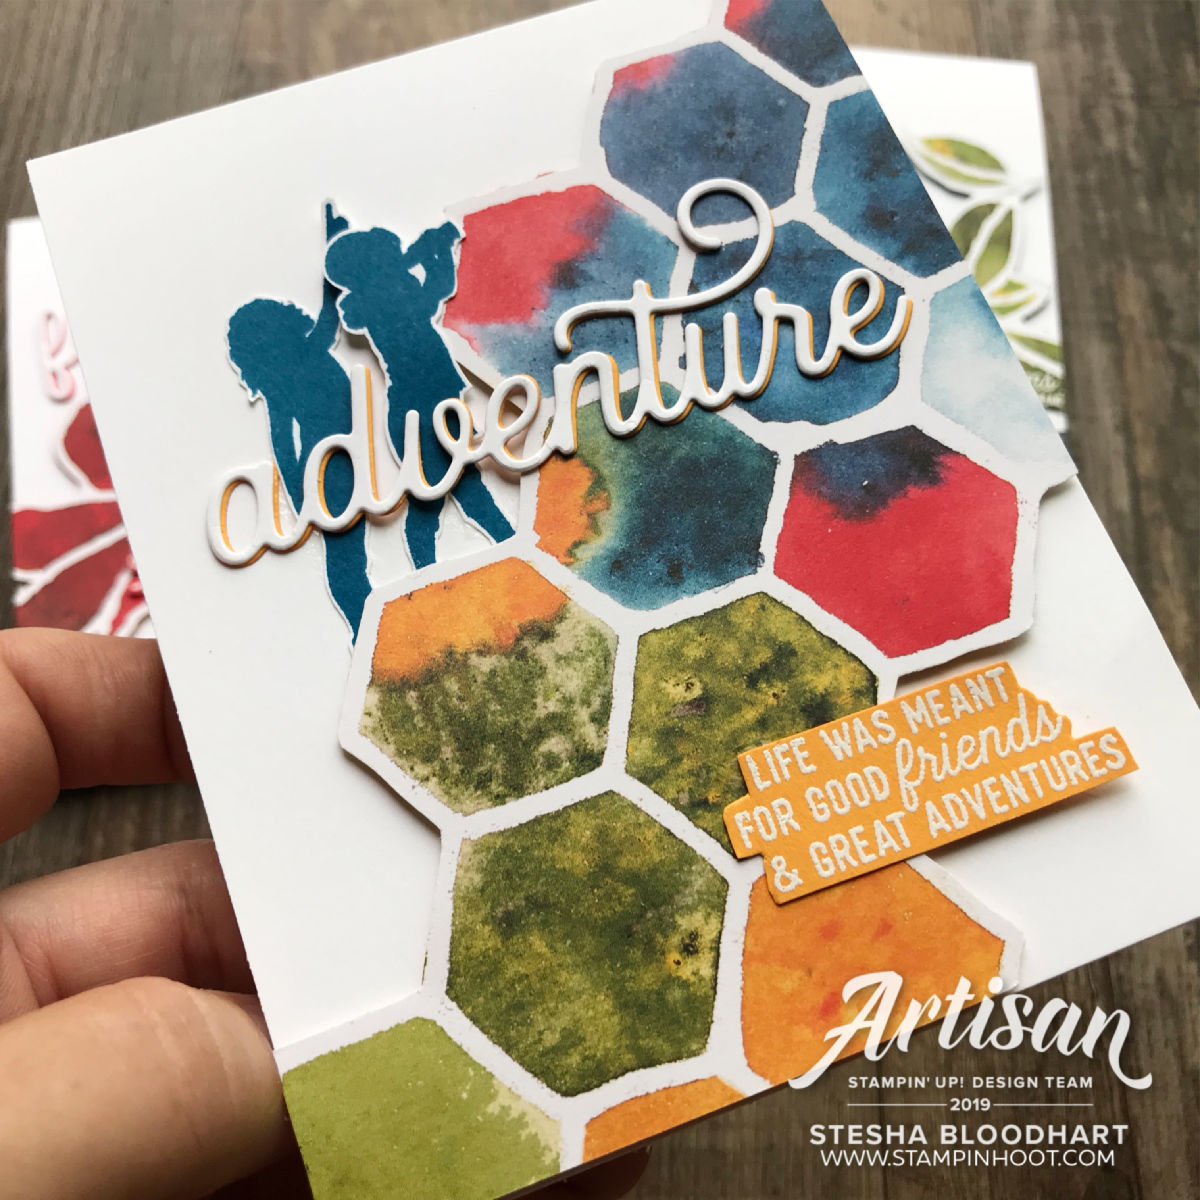 See a Silhouette Designer Series Paper by Stampin' Up! Card by Stesha Bloodhart, Stampin' Hoot! 2019 Artisan Design Team Member